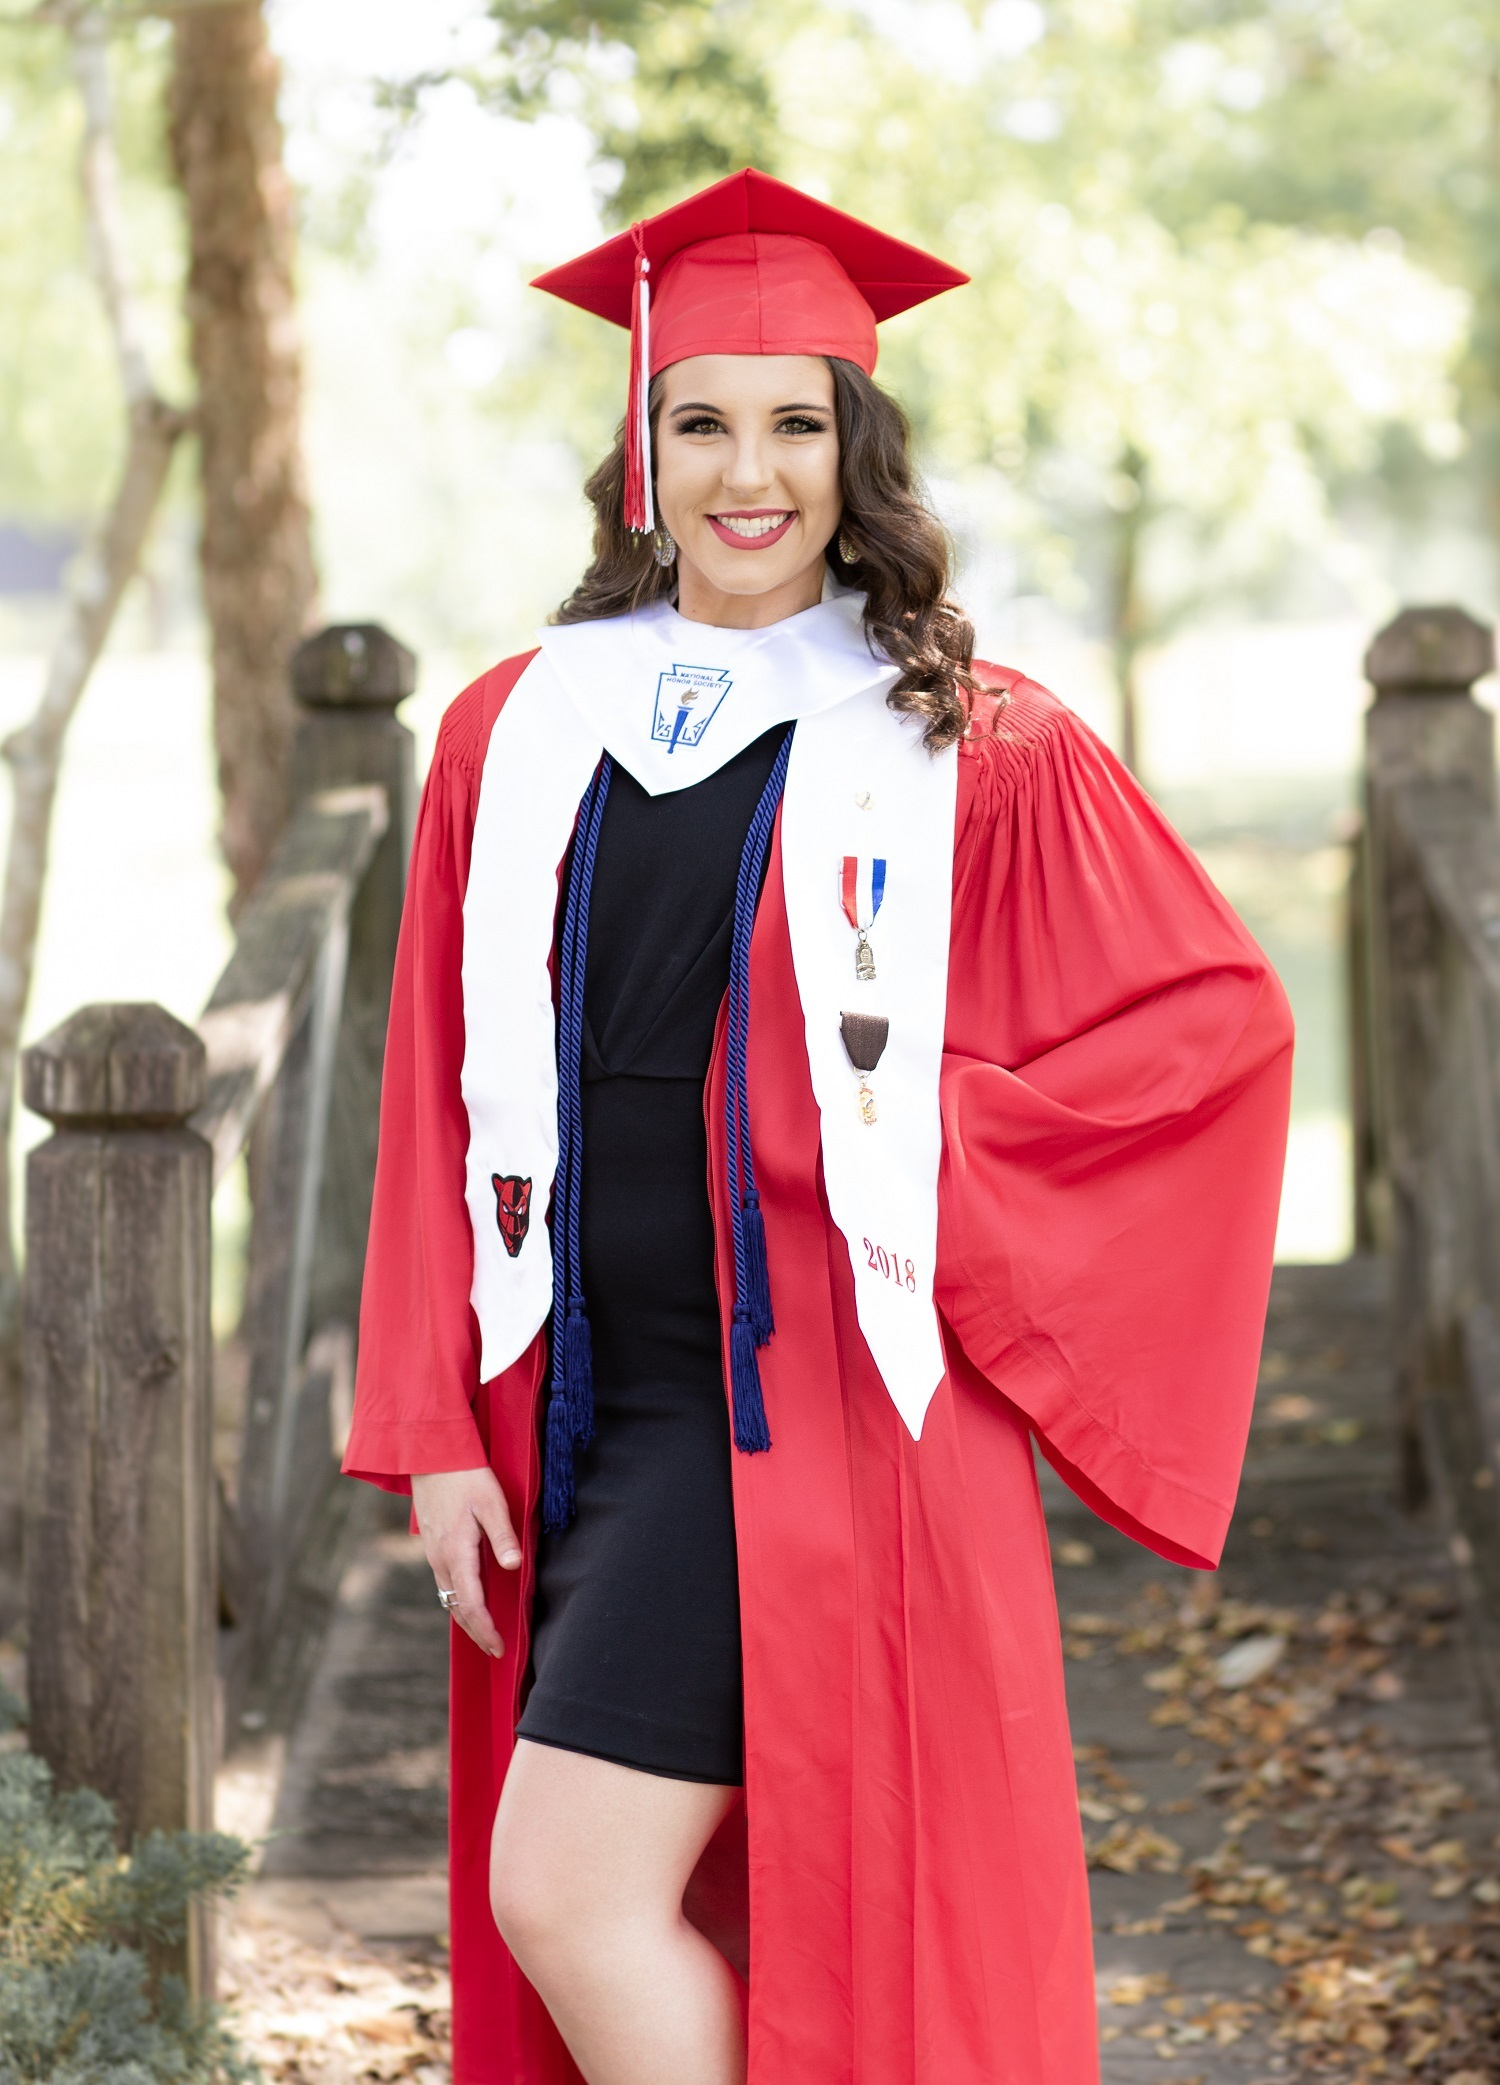 Erin Perry Cap & Gown Session-6.jpg